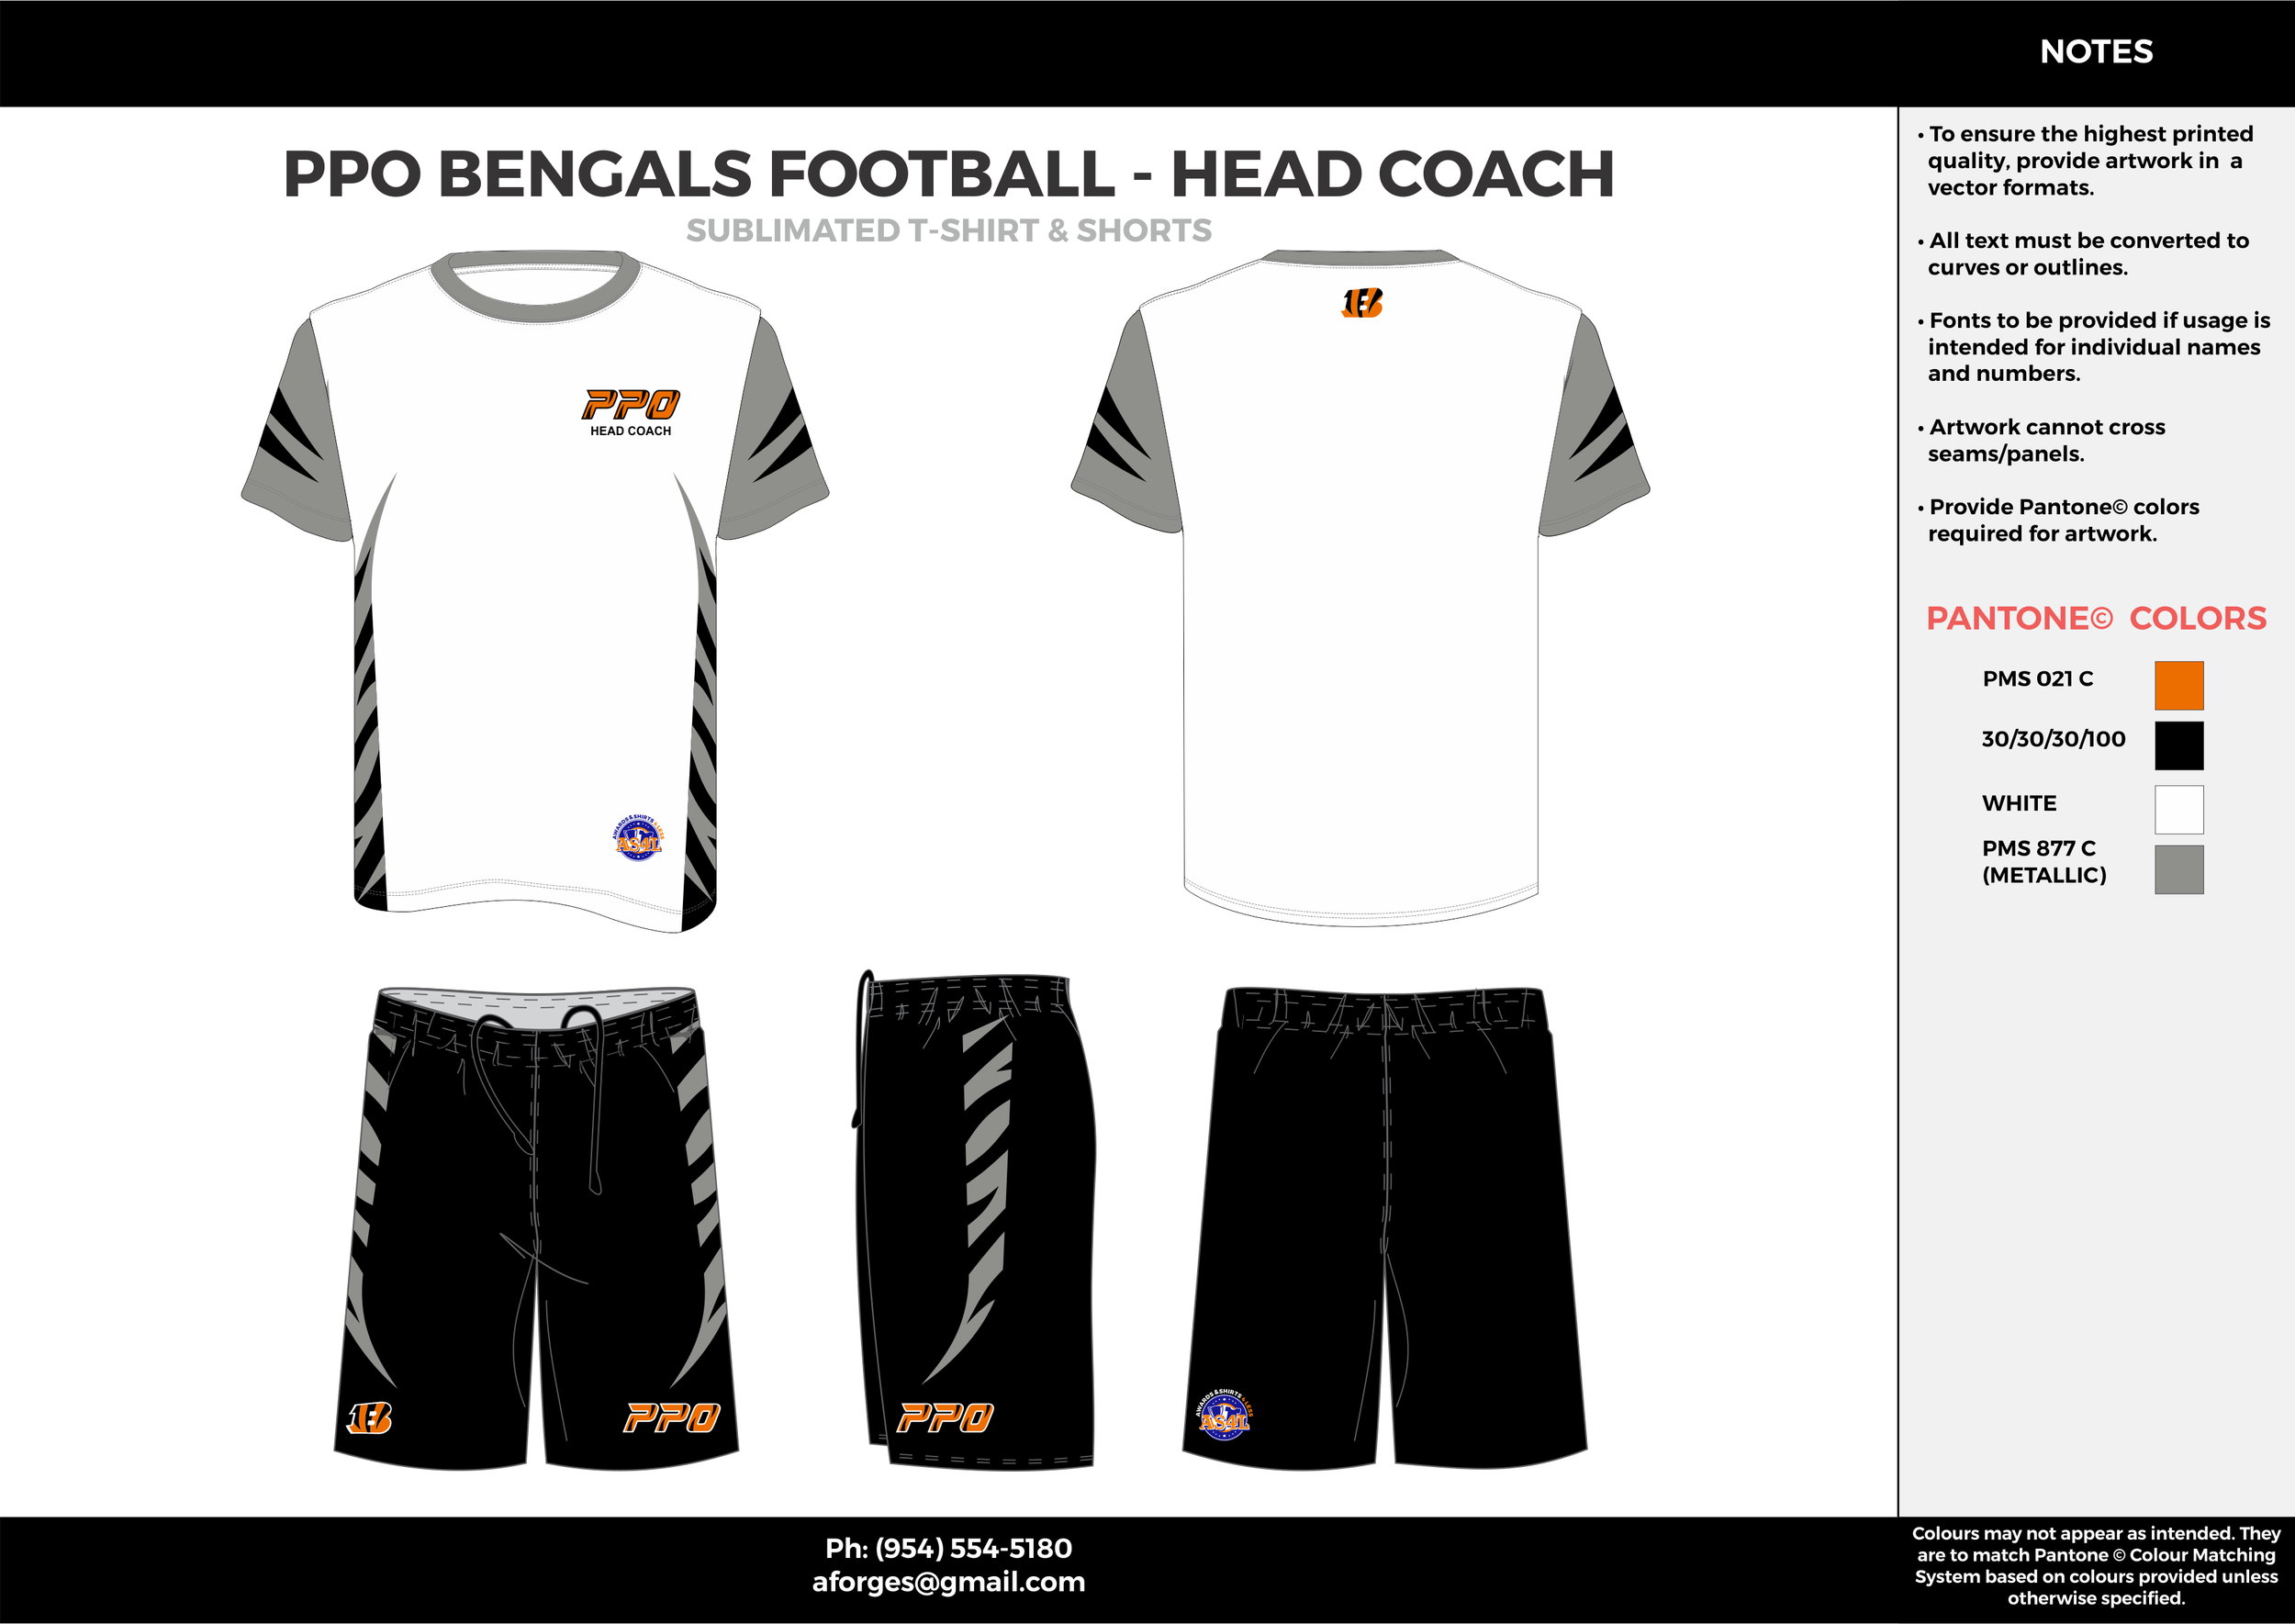 PPO BENGALS FOOTBALL- HEAD COACH White black gray orange Football uniforms jerseys and shorts